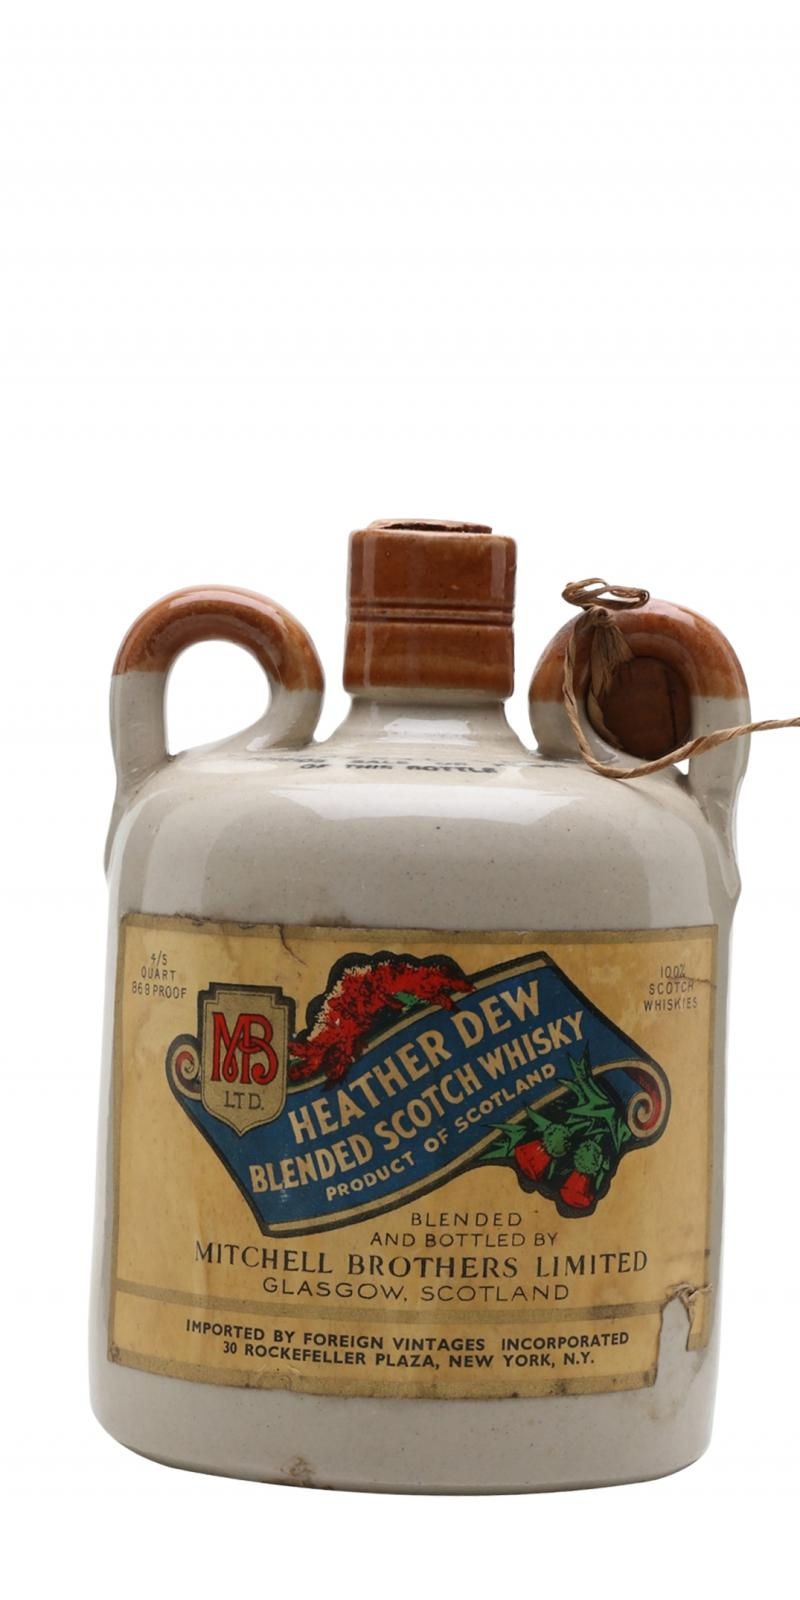 Heather Dew Blended Scotch Whisky